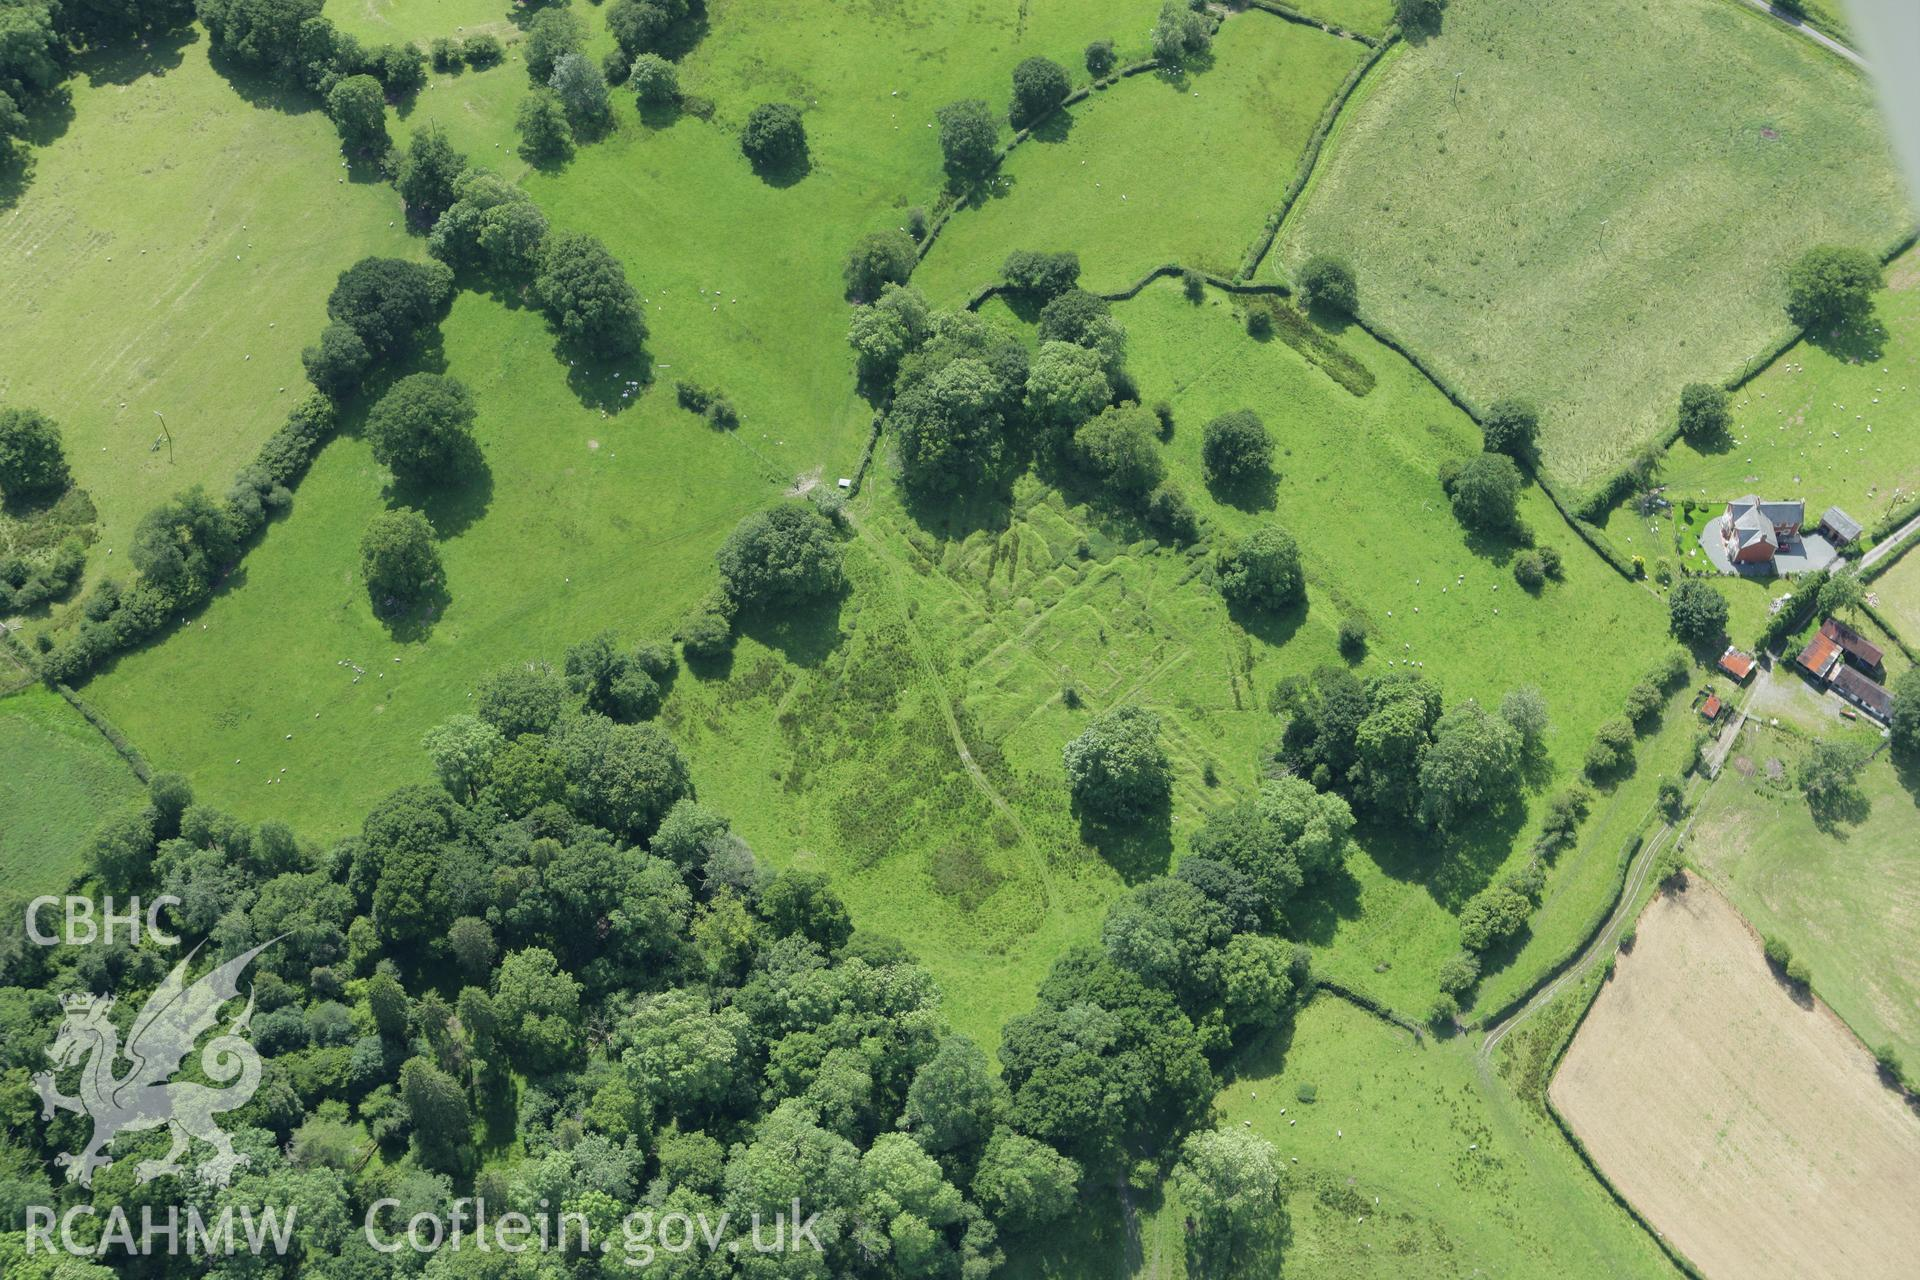 RCAHMW colour oblique aerial photograph of Castell Collen Roman Fort. Taken on 09 July 2007 by Toby Driver